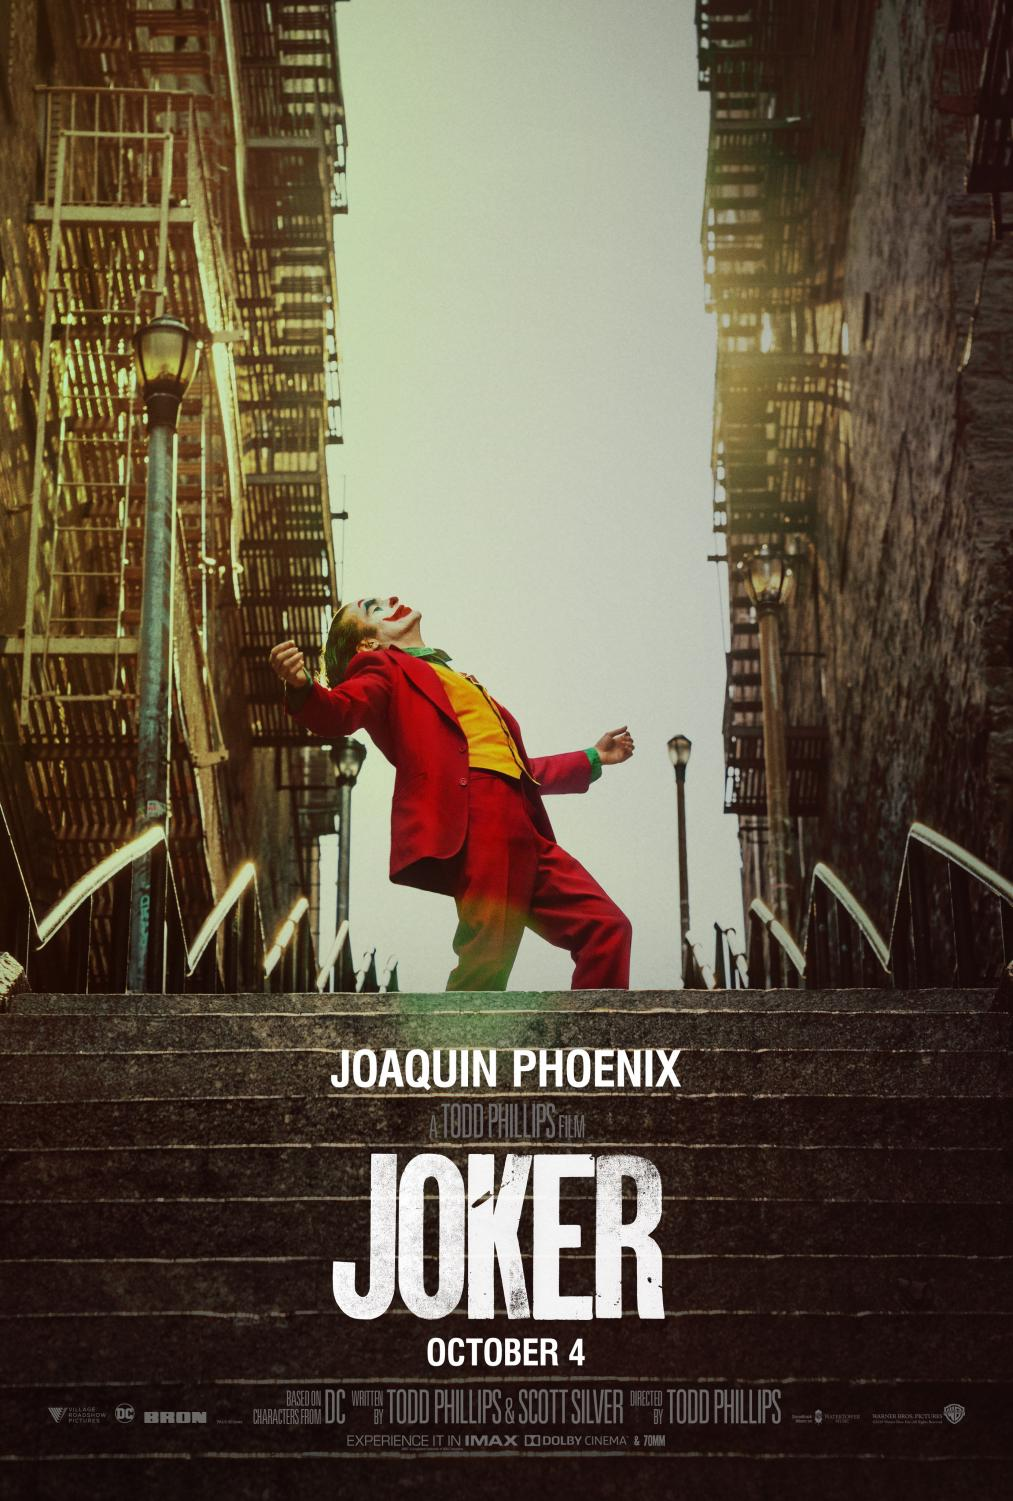 The Joker, starring Joaquin Phoenix, earned $96 million at the box office in its opening weekend. This is the biggest October opening of all time.